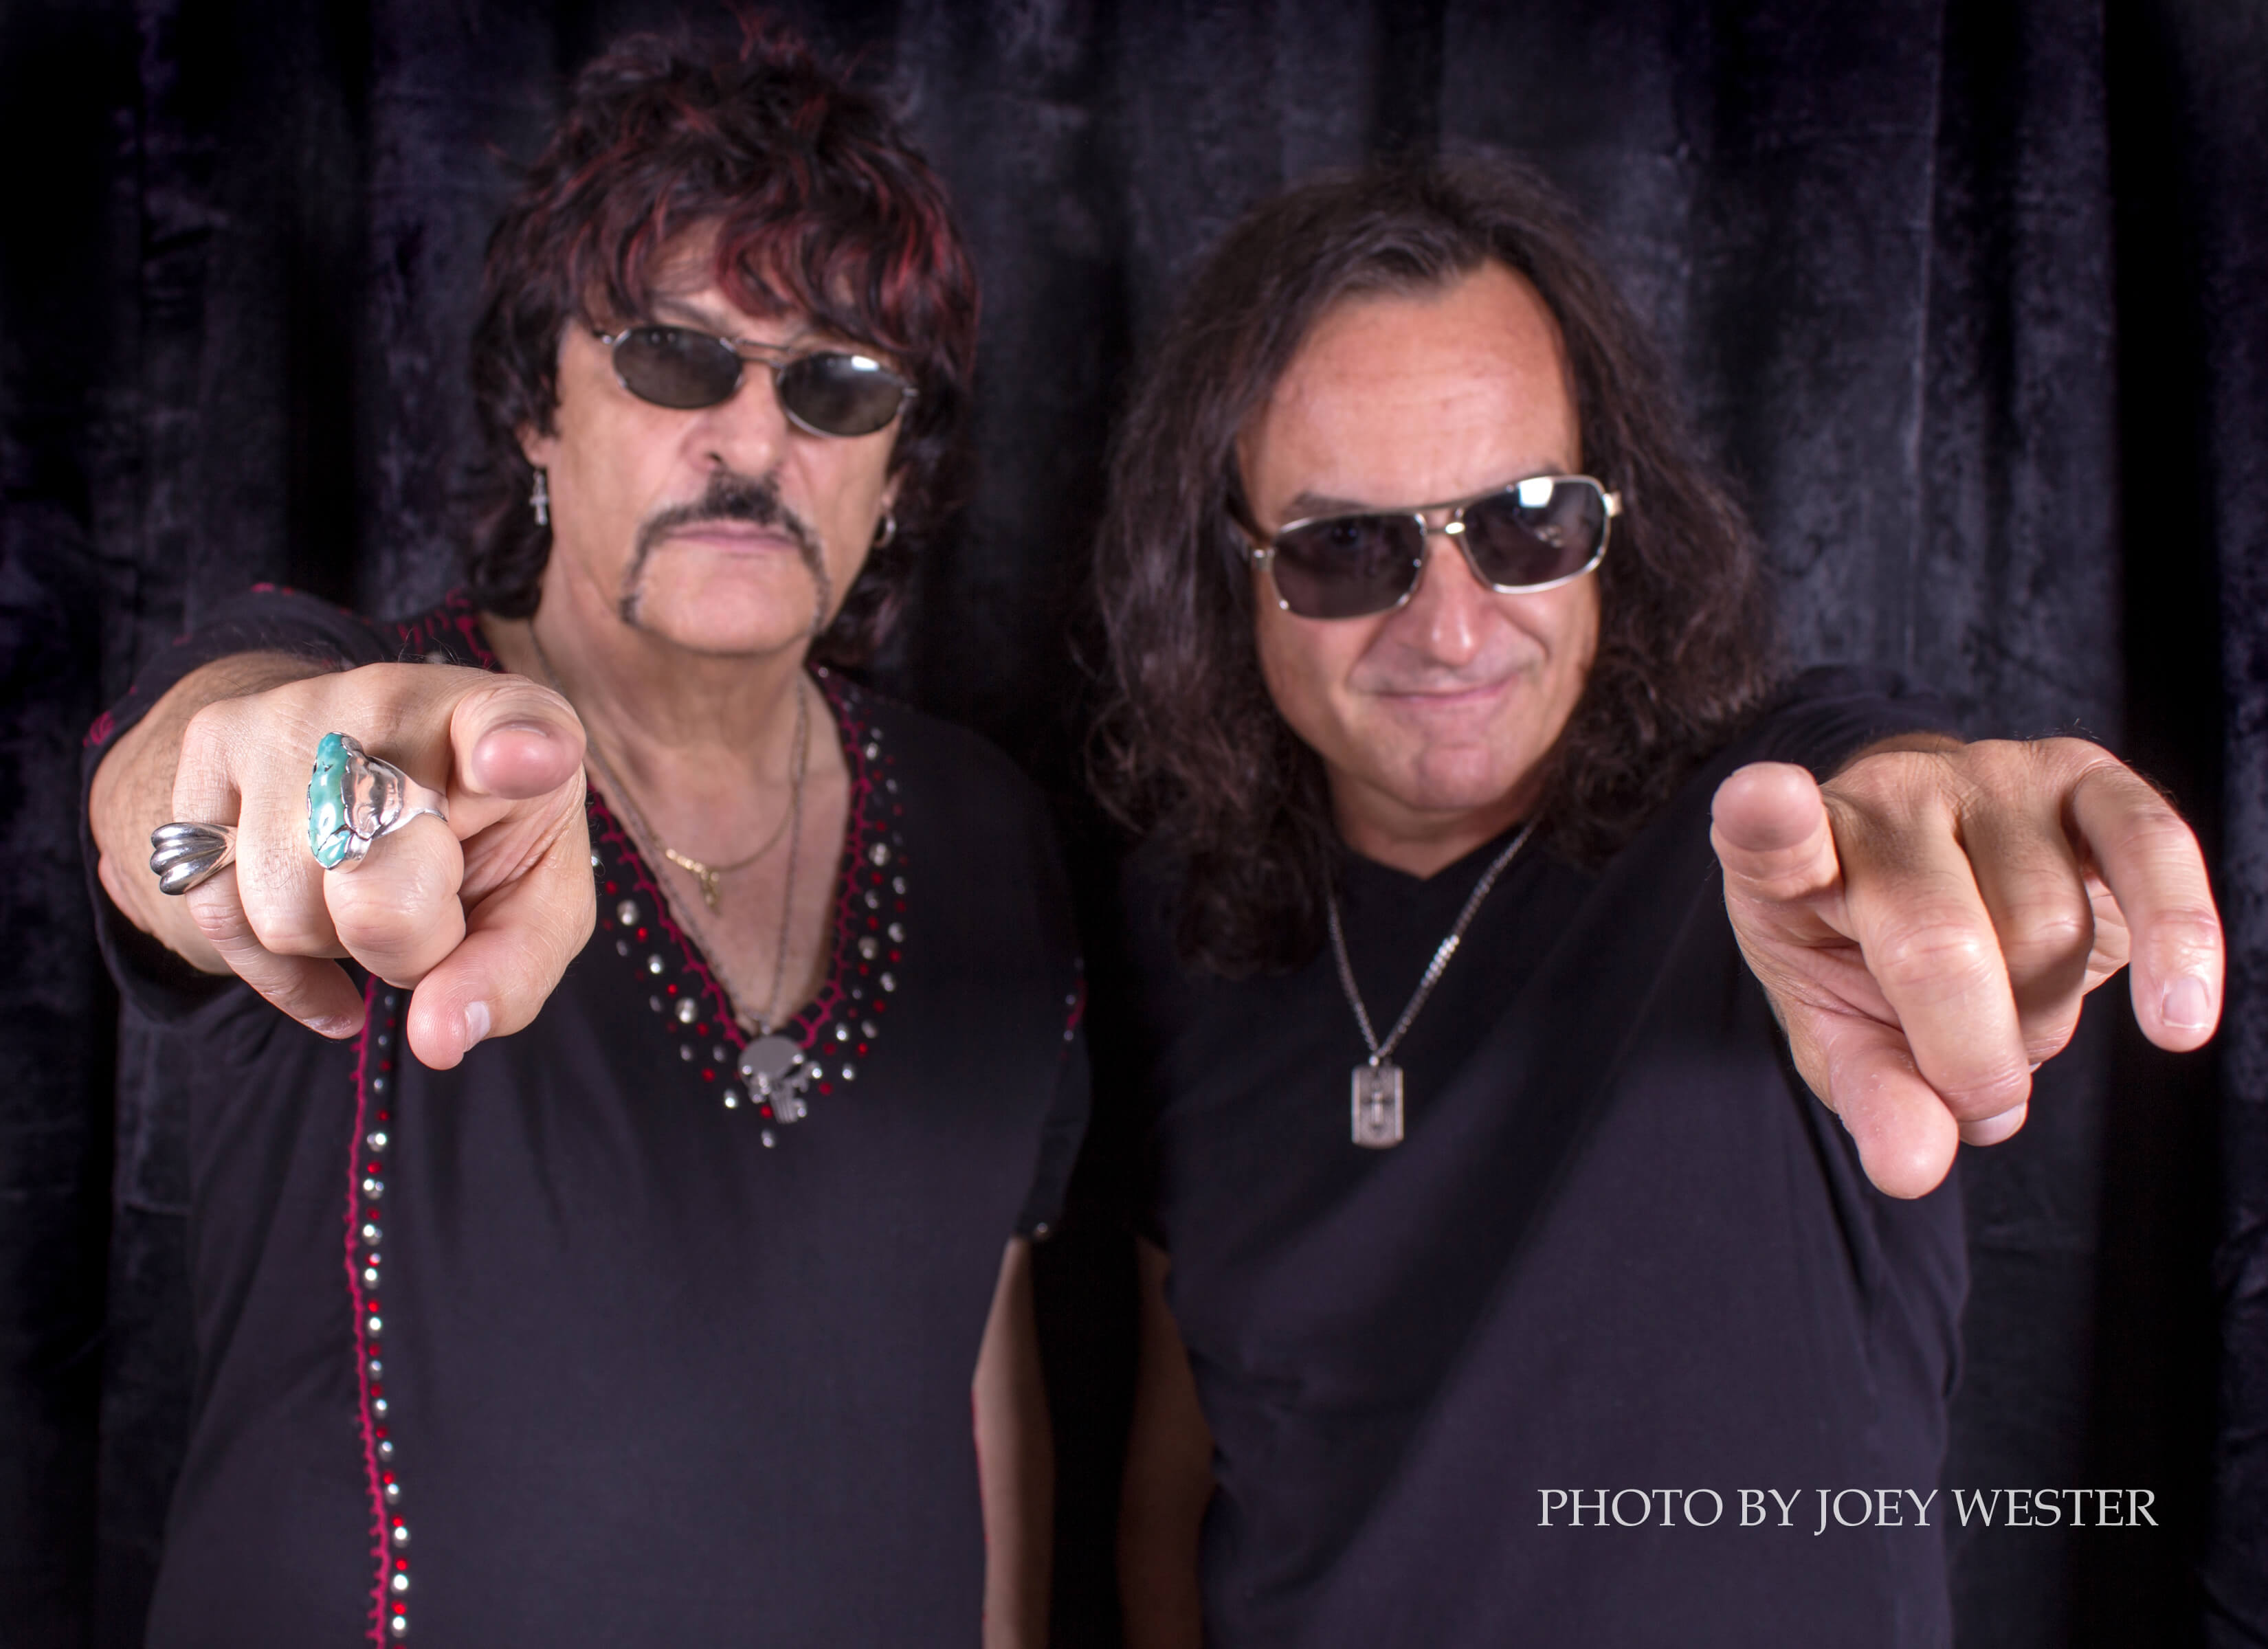 Appice pic 1